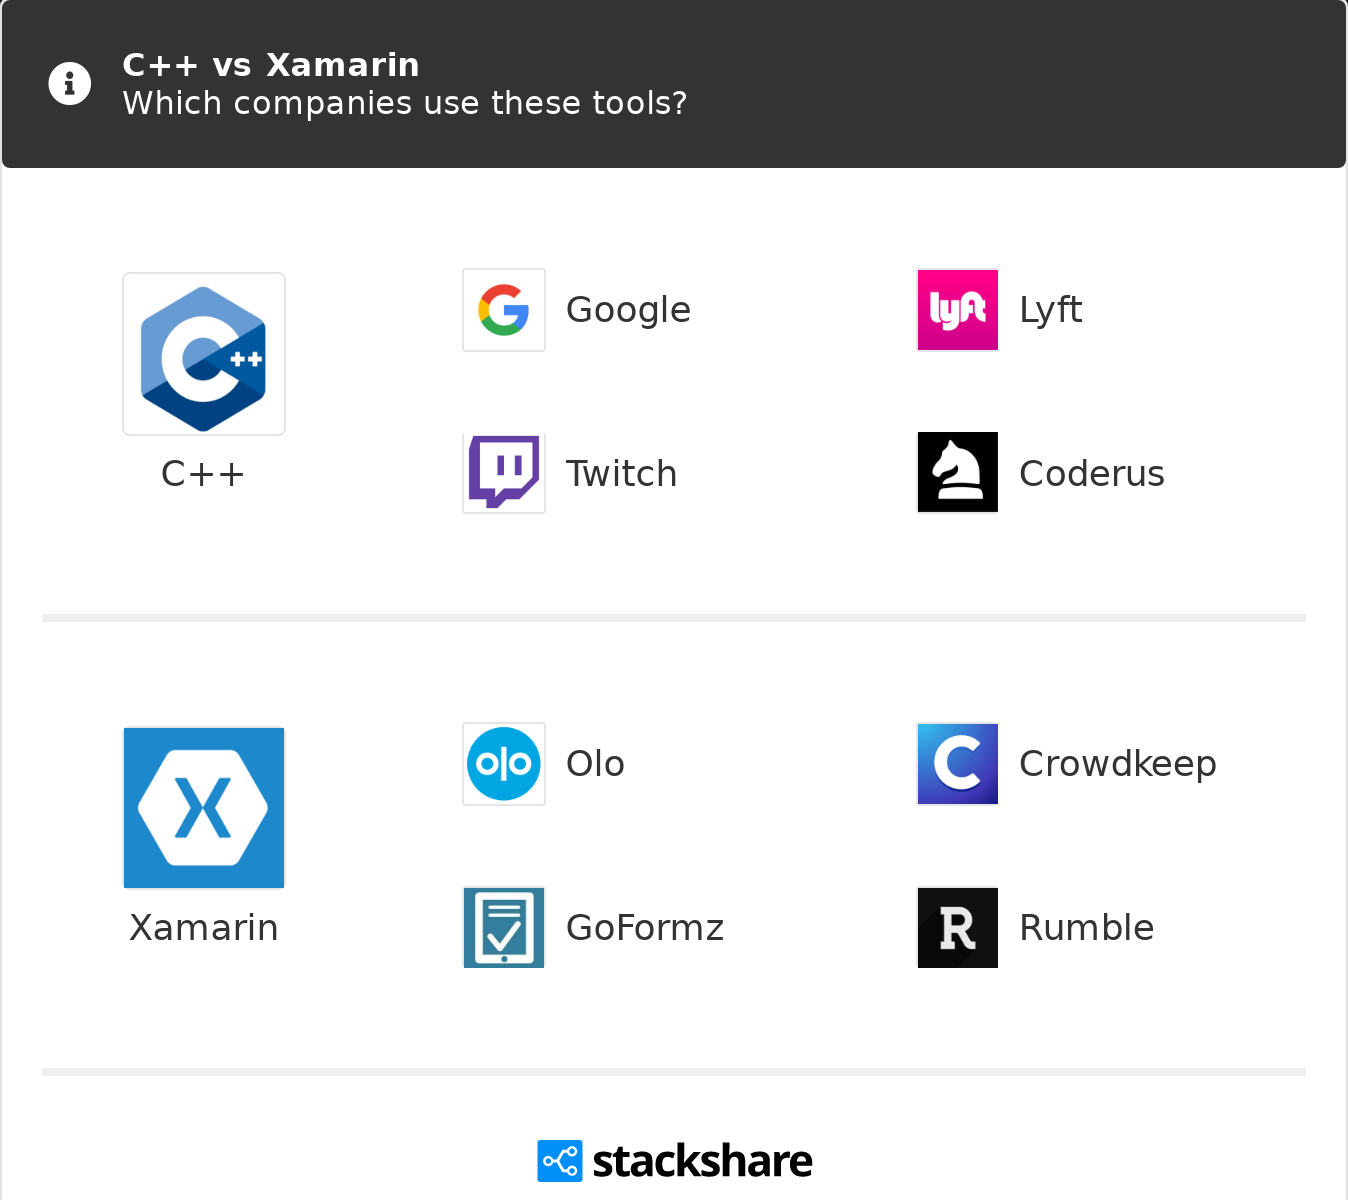 C++ vs Xamarin | What are the differences?